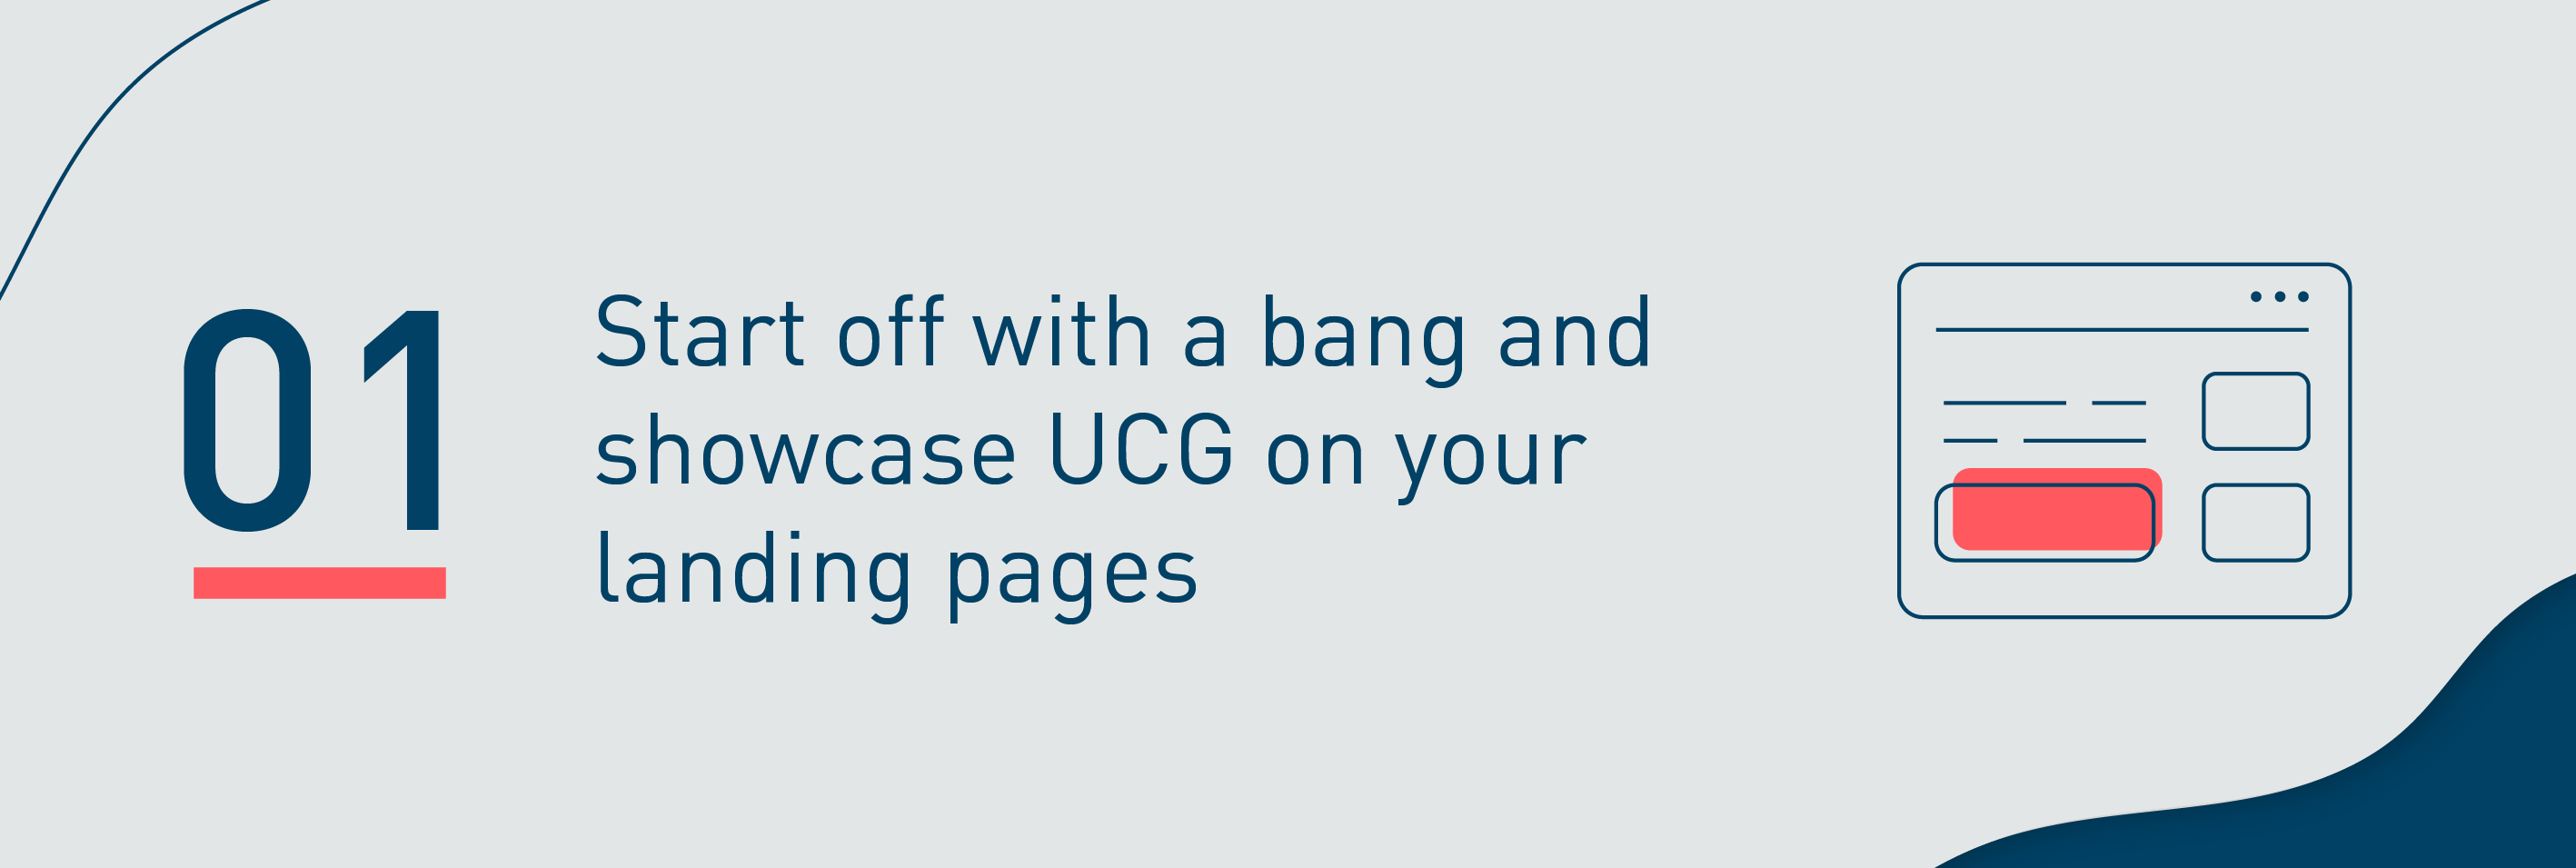 Showcase UCG on your landing pages